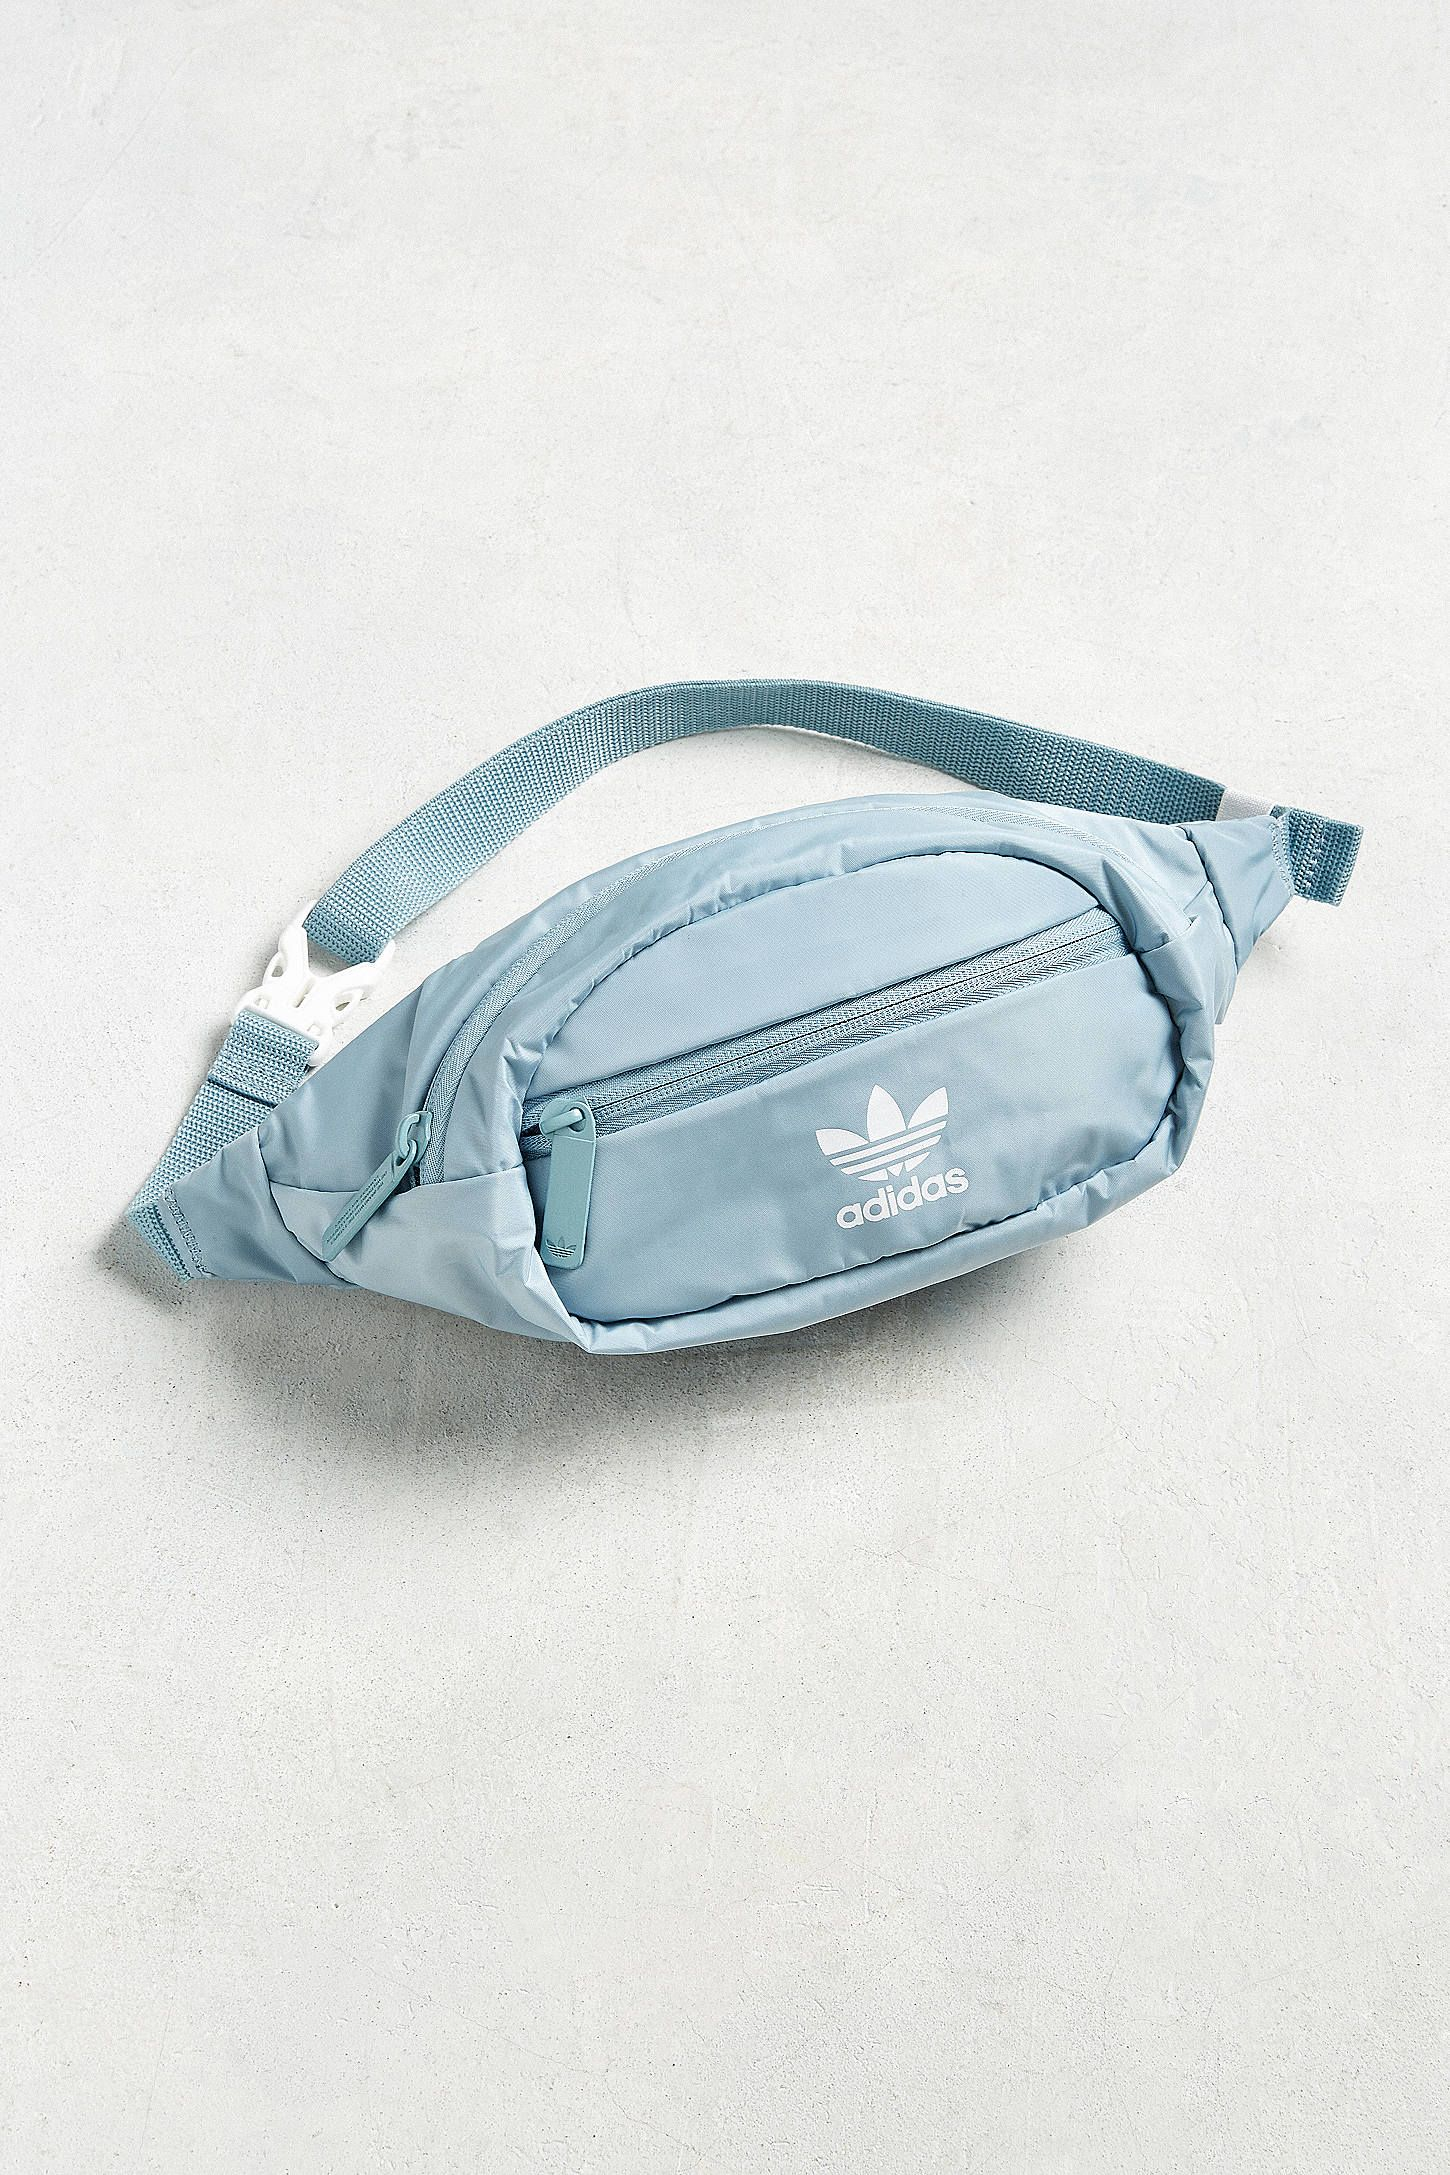 7ff4f1bd1b Shop adidas Originals National Sling Bag at Urban Outfitters today. We  carry all the latest styles